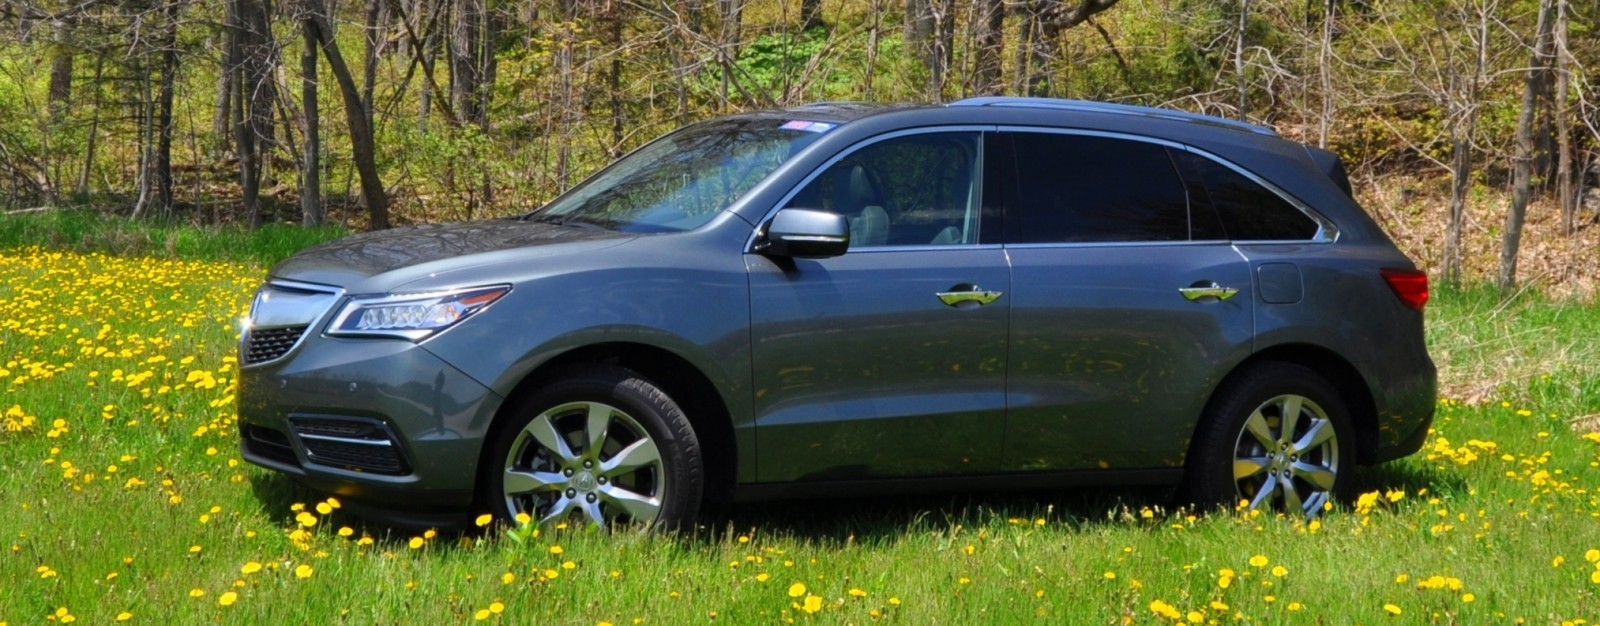 Road Test Review Acura MDX Is Premium And Posh Seat - Acura mdx review 2014